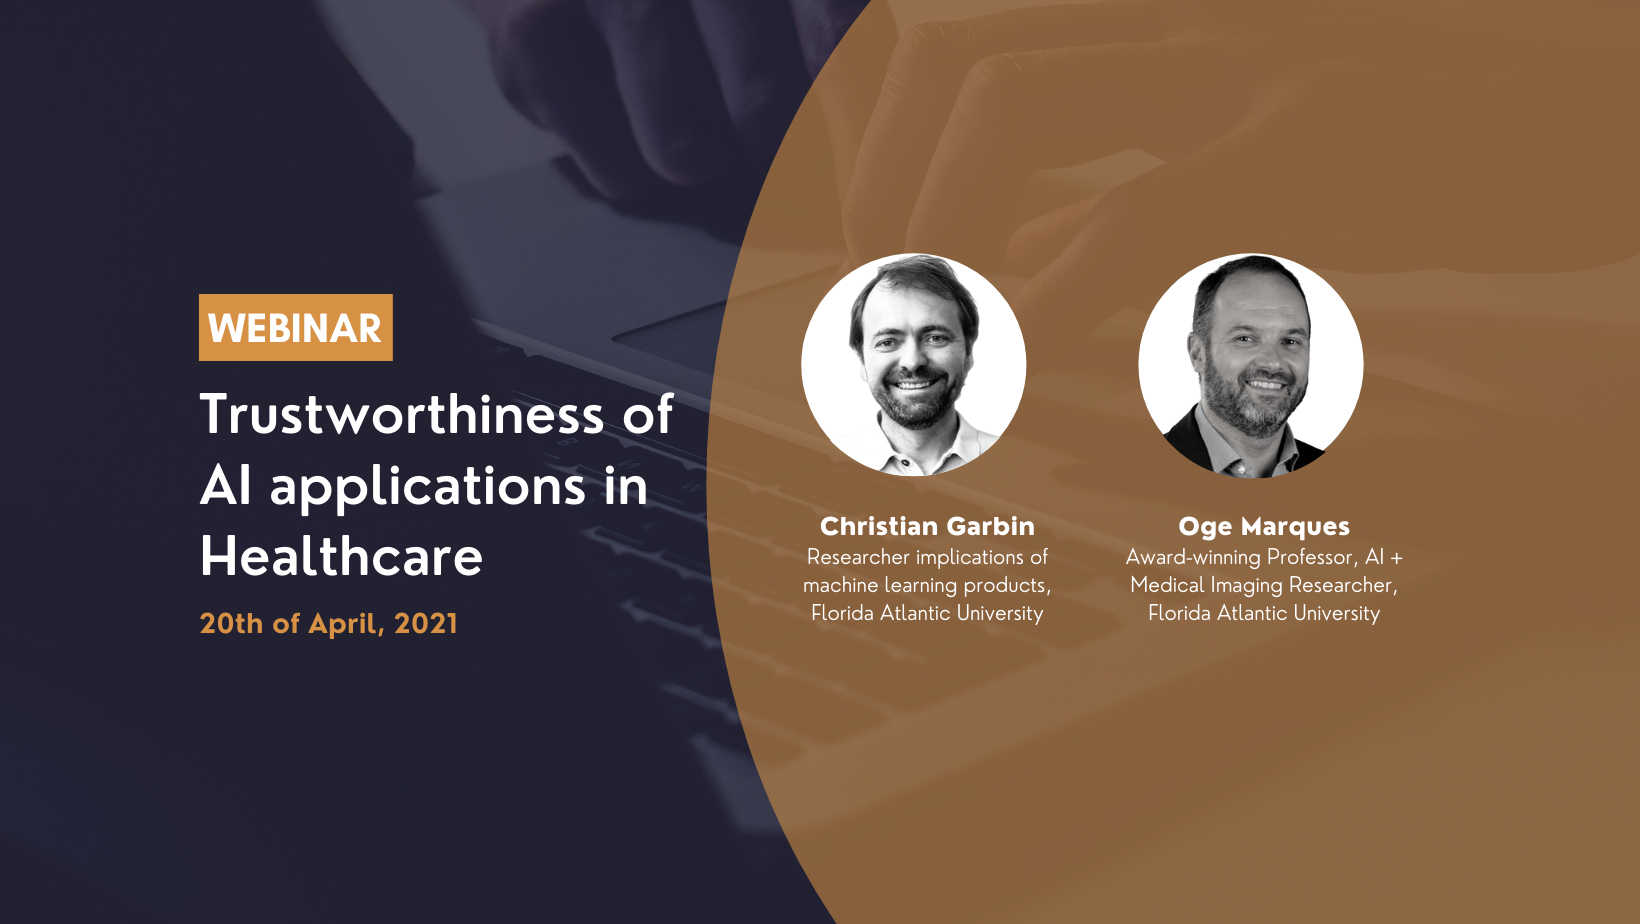 Webinar: Trustworthiness of AI applications in Healthcare